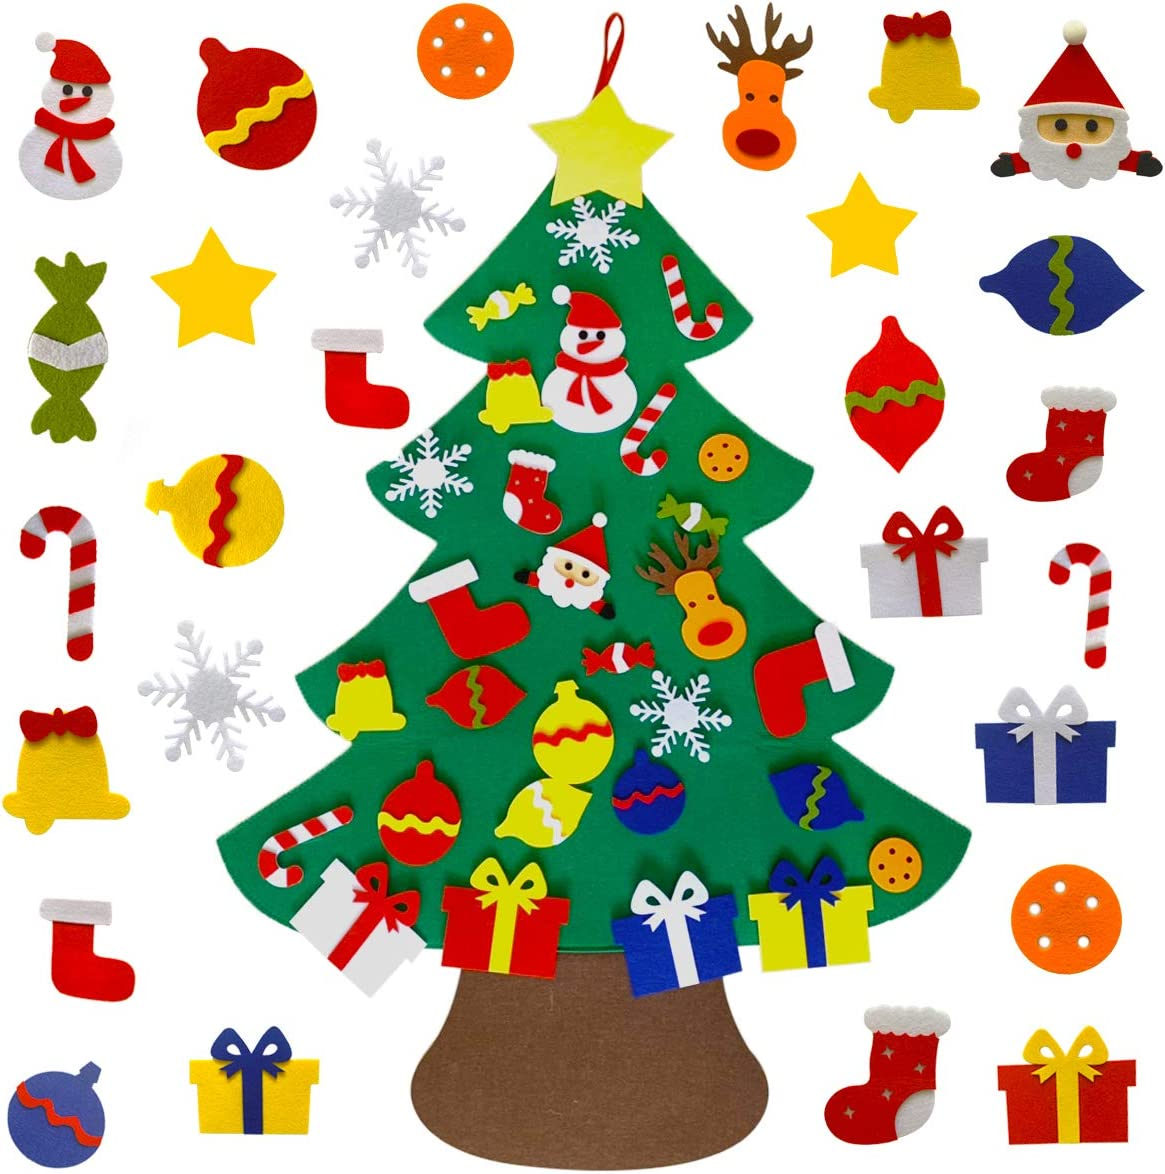 Shelly DIY Felt Christmas Tree with 30pcs Ornaments, Xmas Gifts for Kids New Year Handmade Christmas Door Wall Hanging Decorations